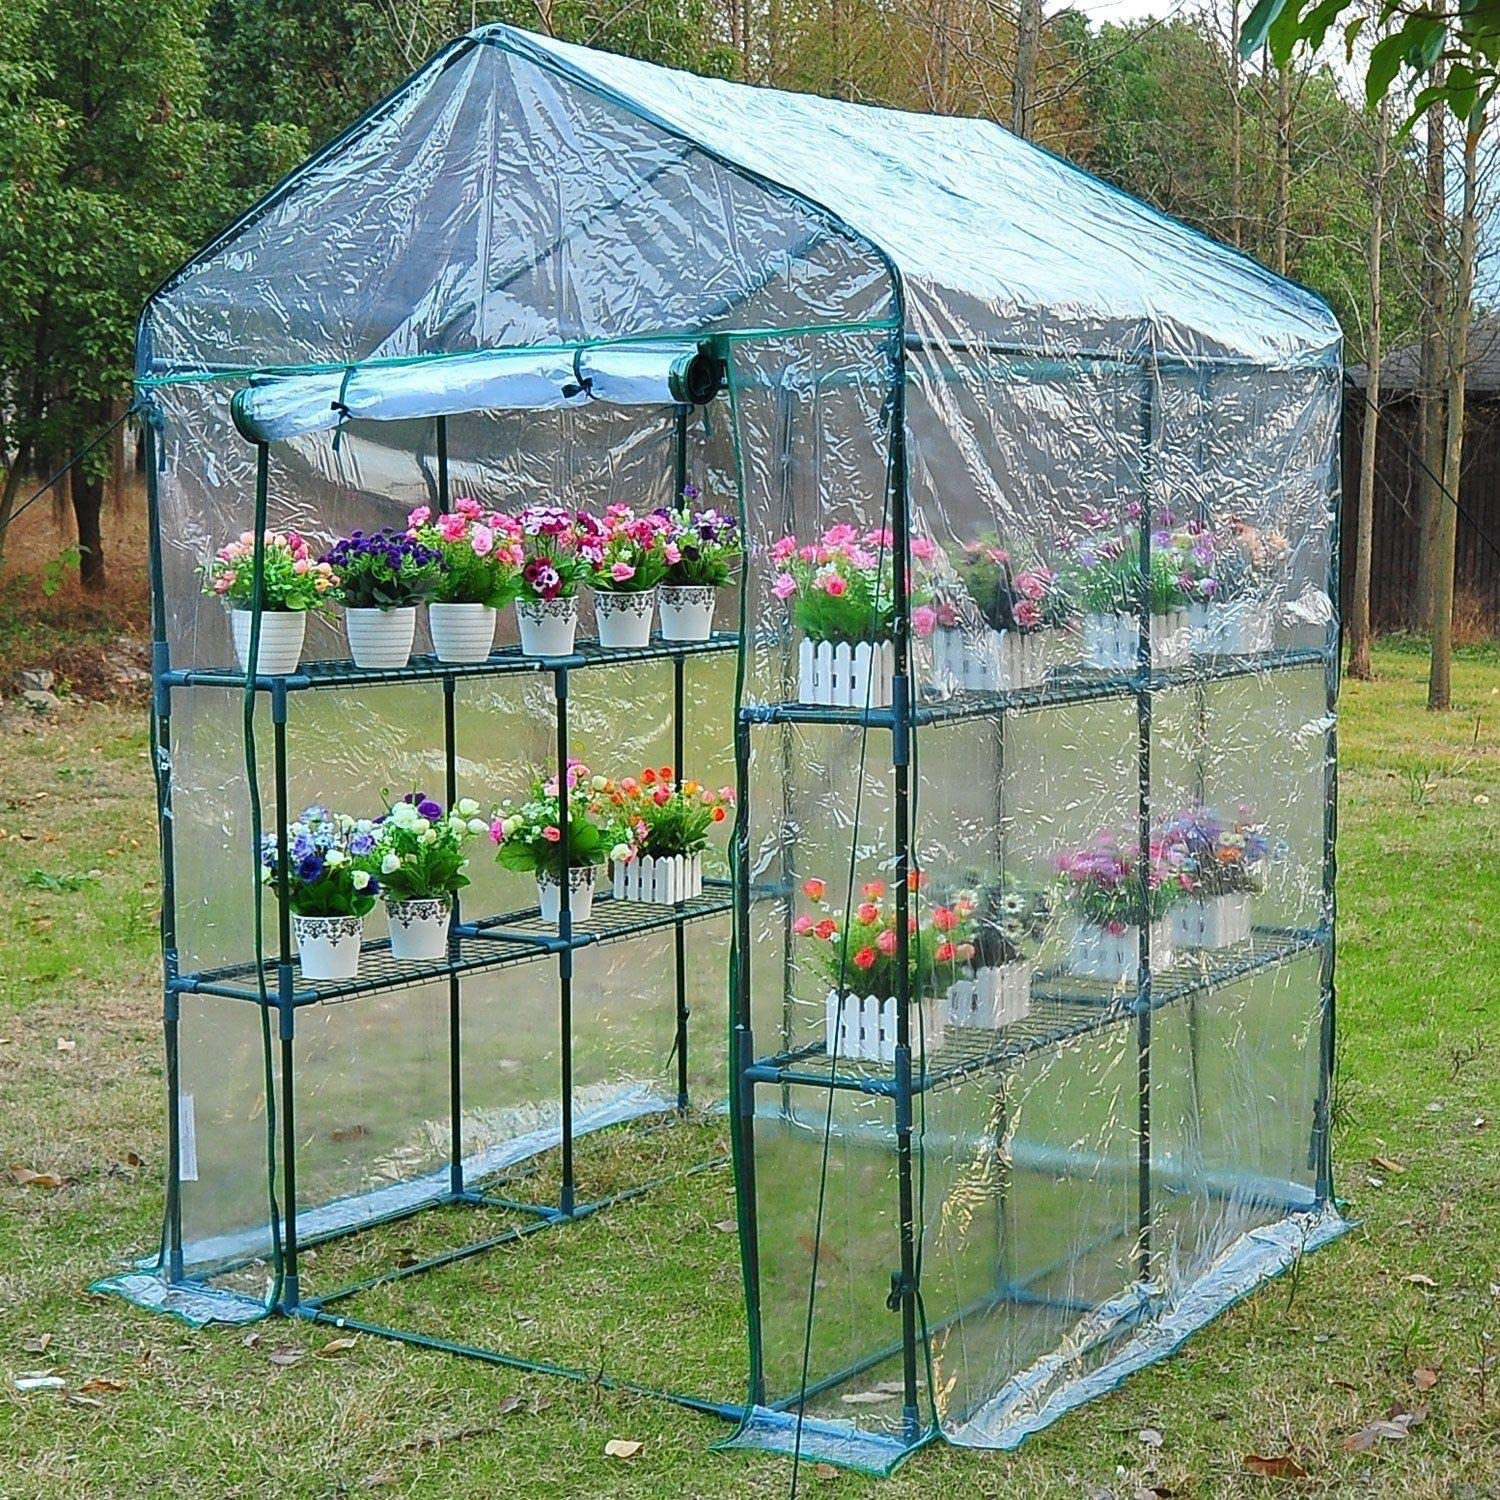 Outsunny 5' x 5' x 6' Walk-in Garden Greenhouse Review